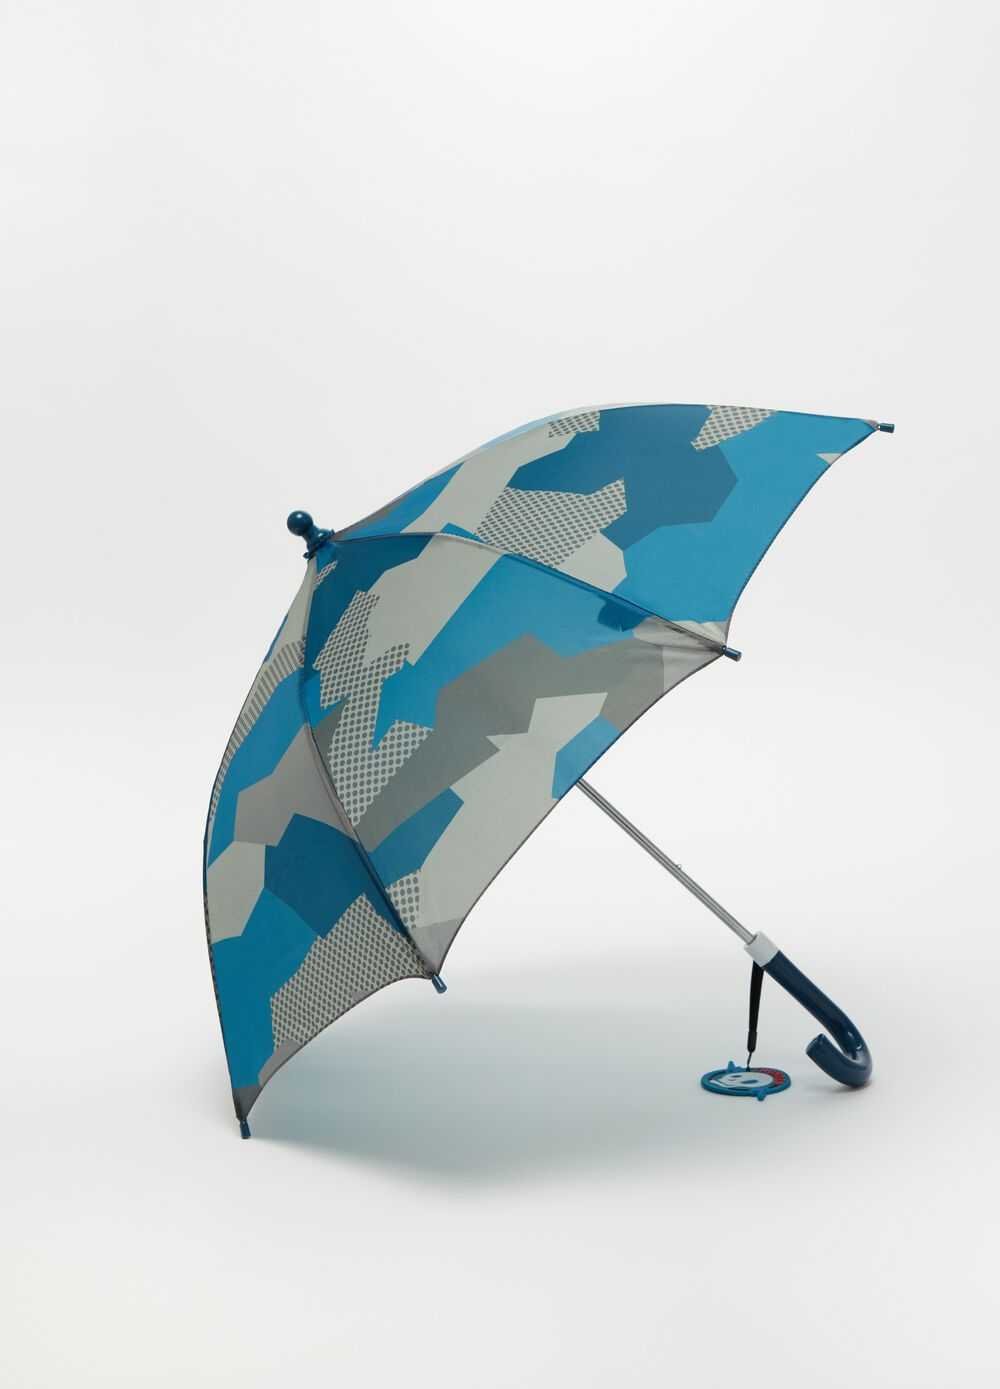 Umbrella with camouflage pattern